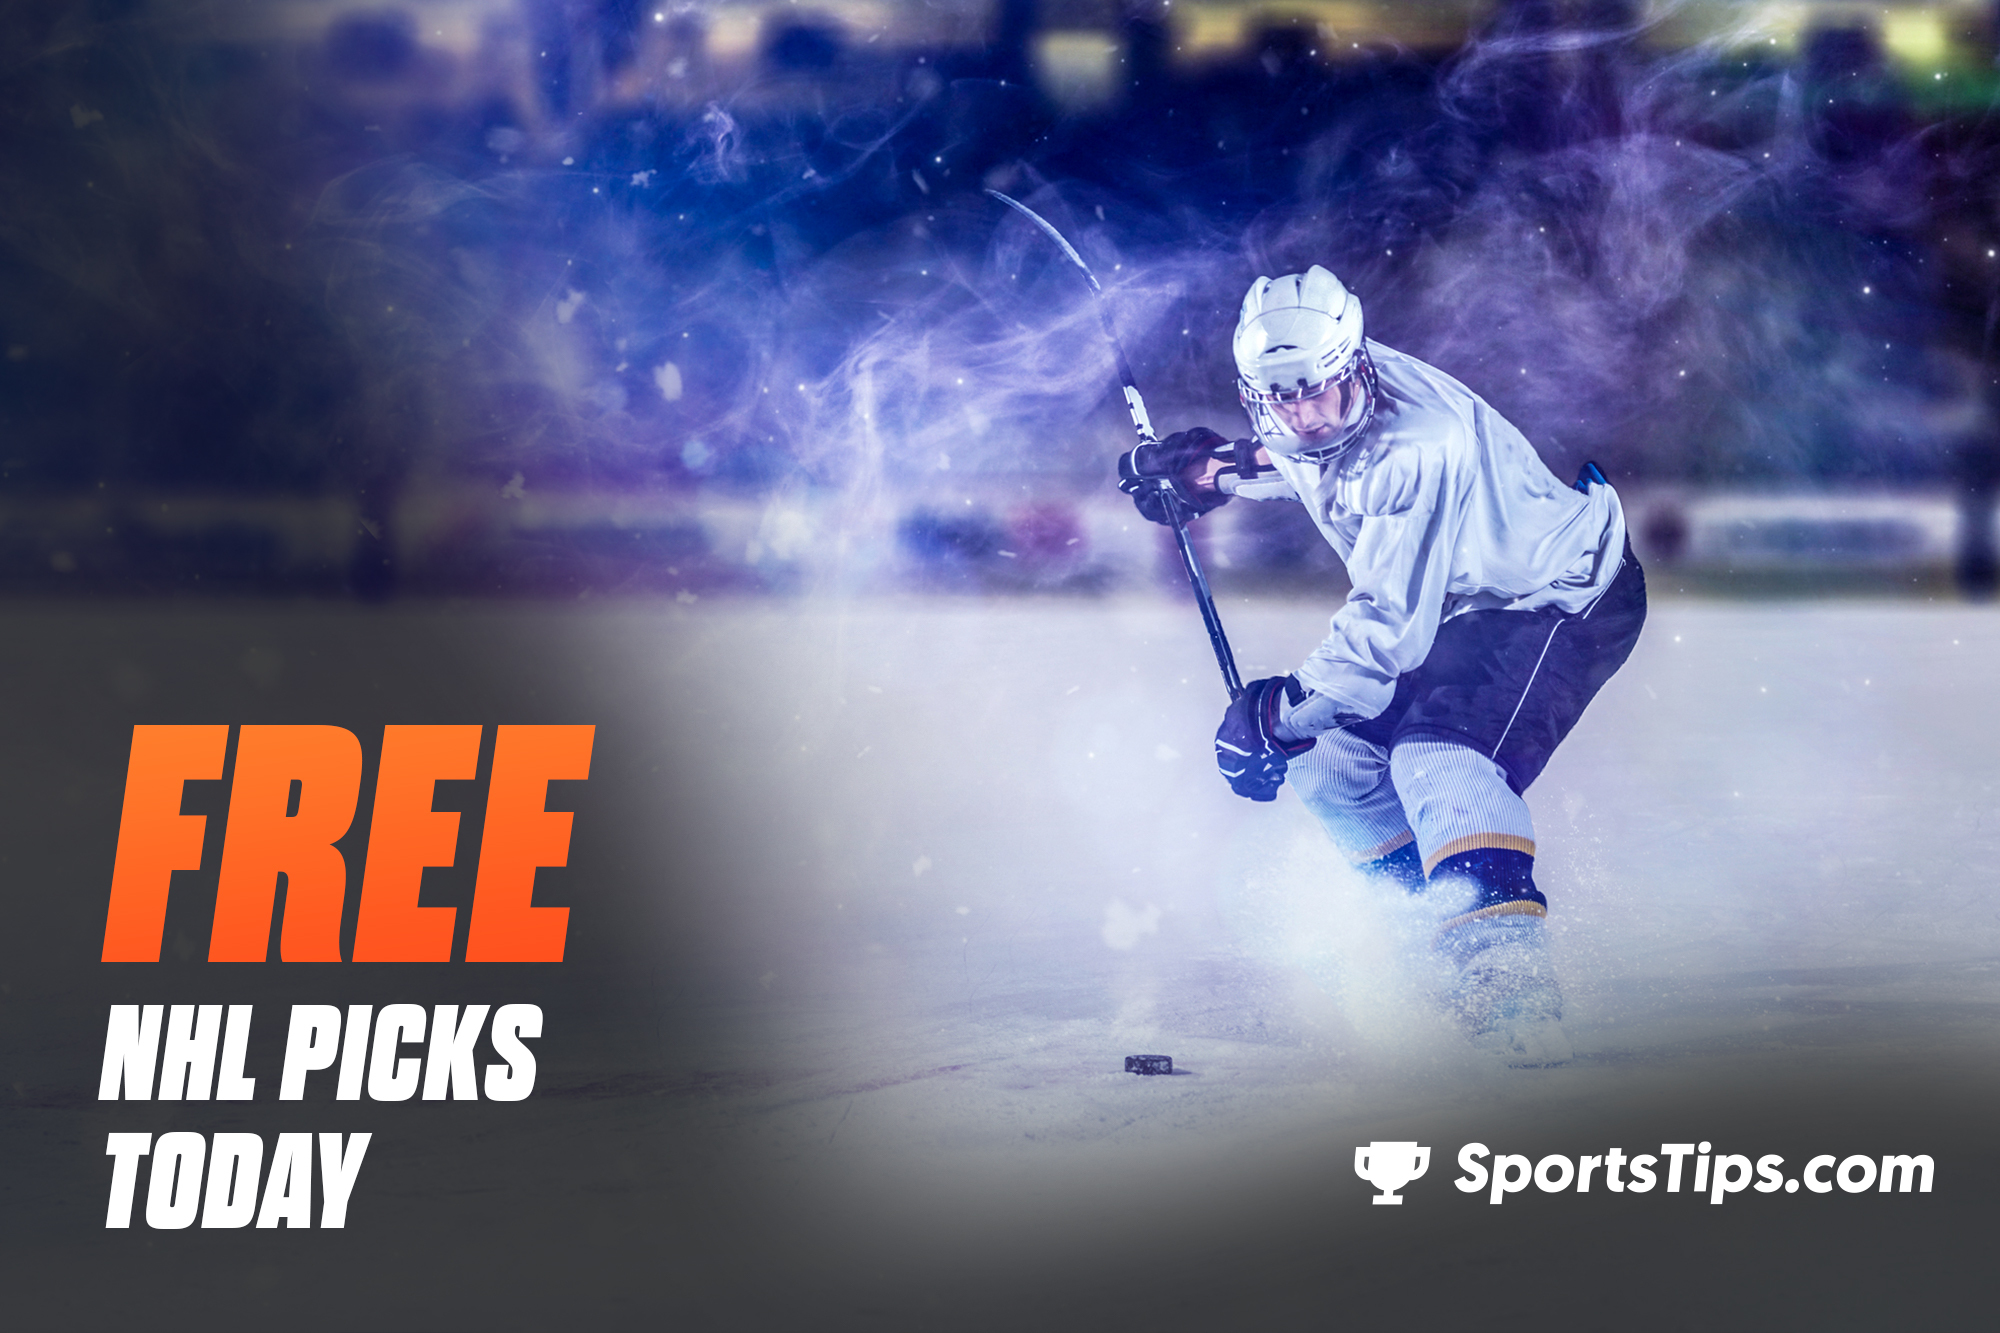 Free NHL Picks Today for Wednesday, February 24th, 2021